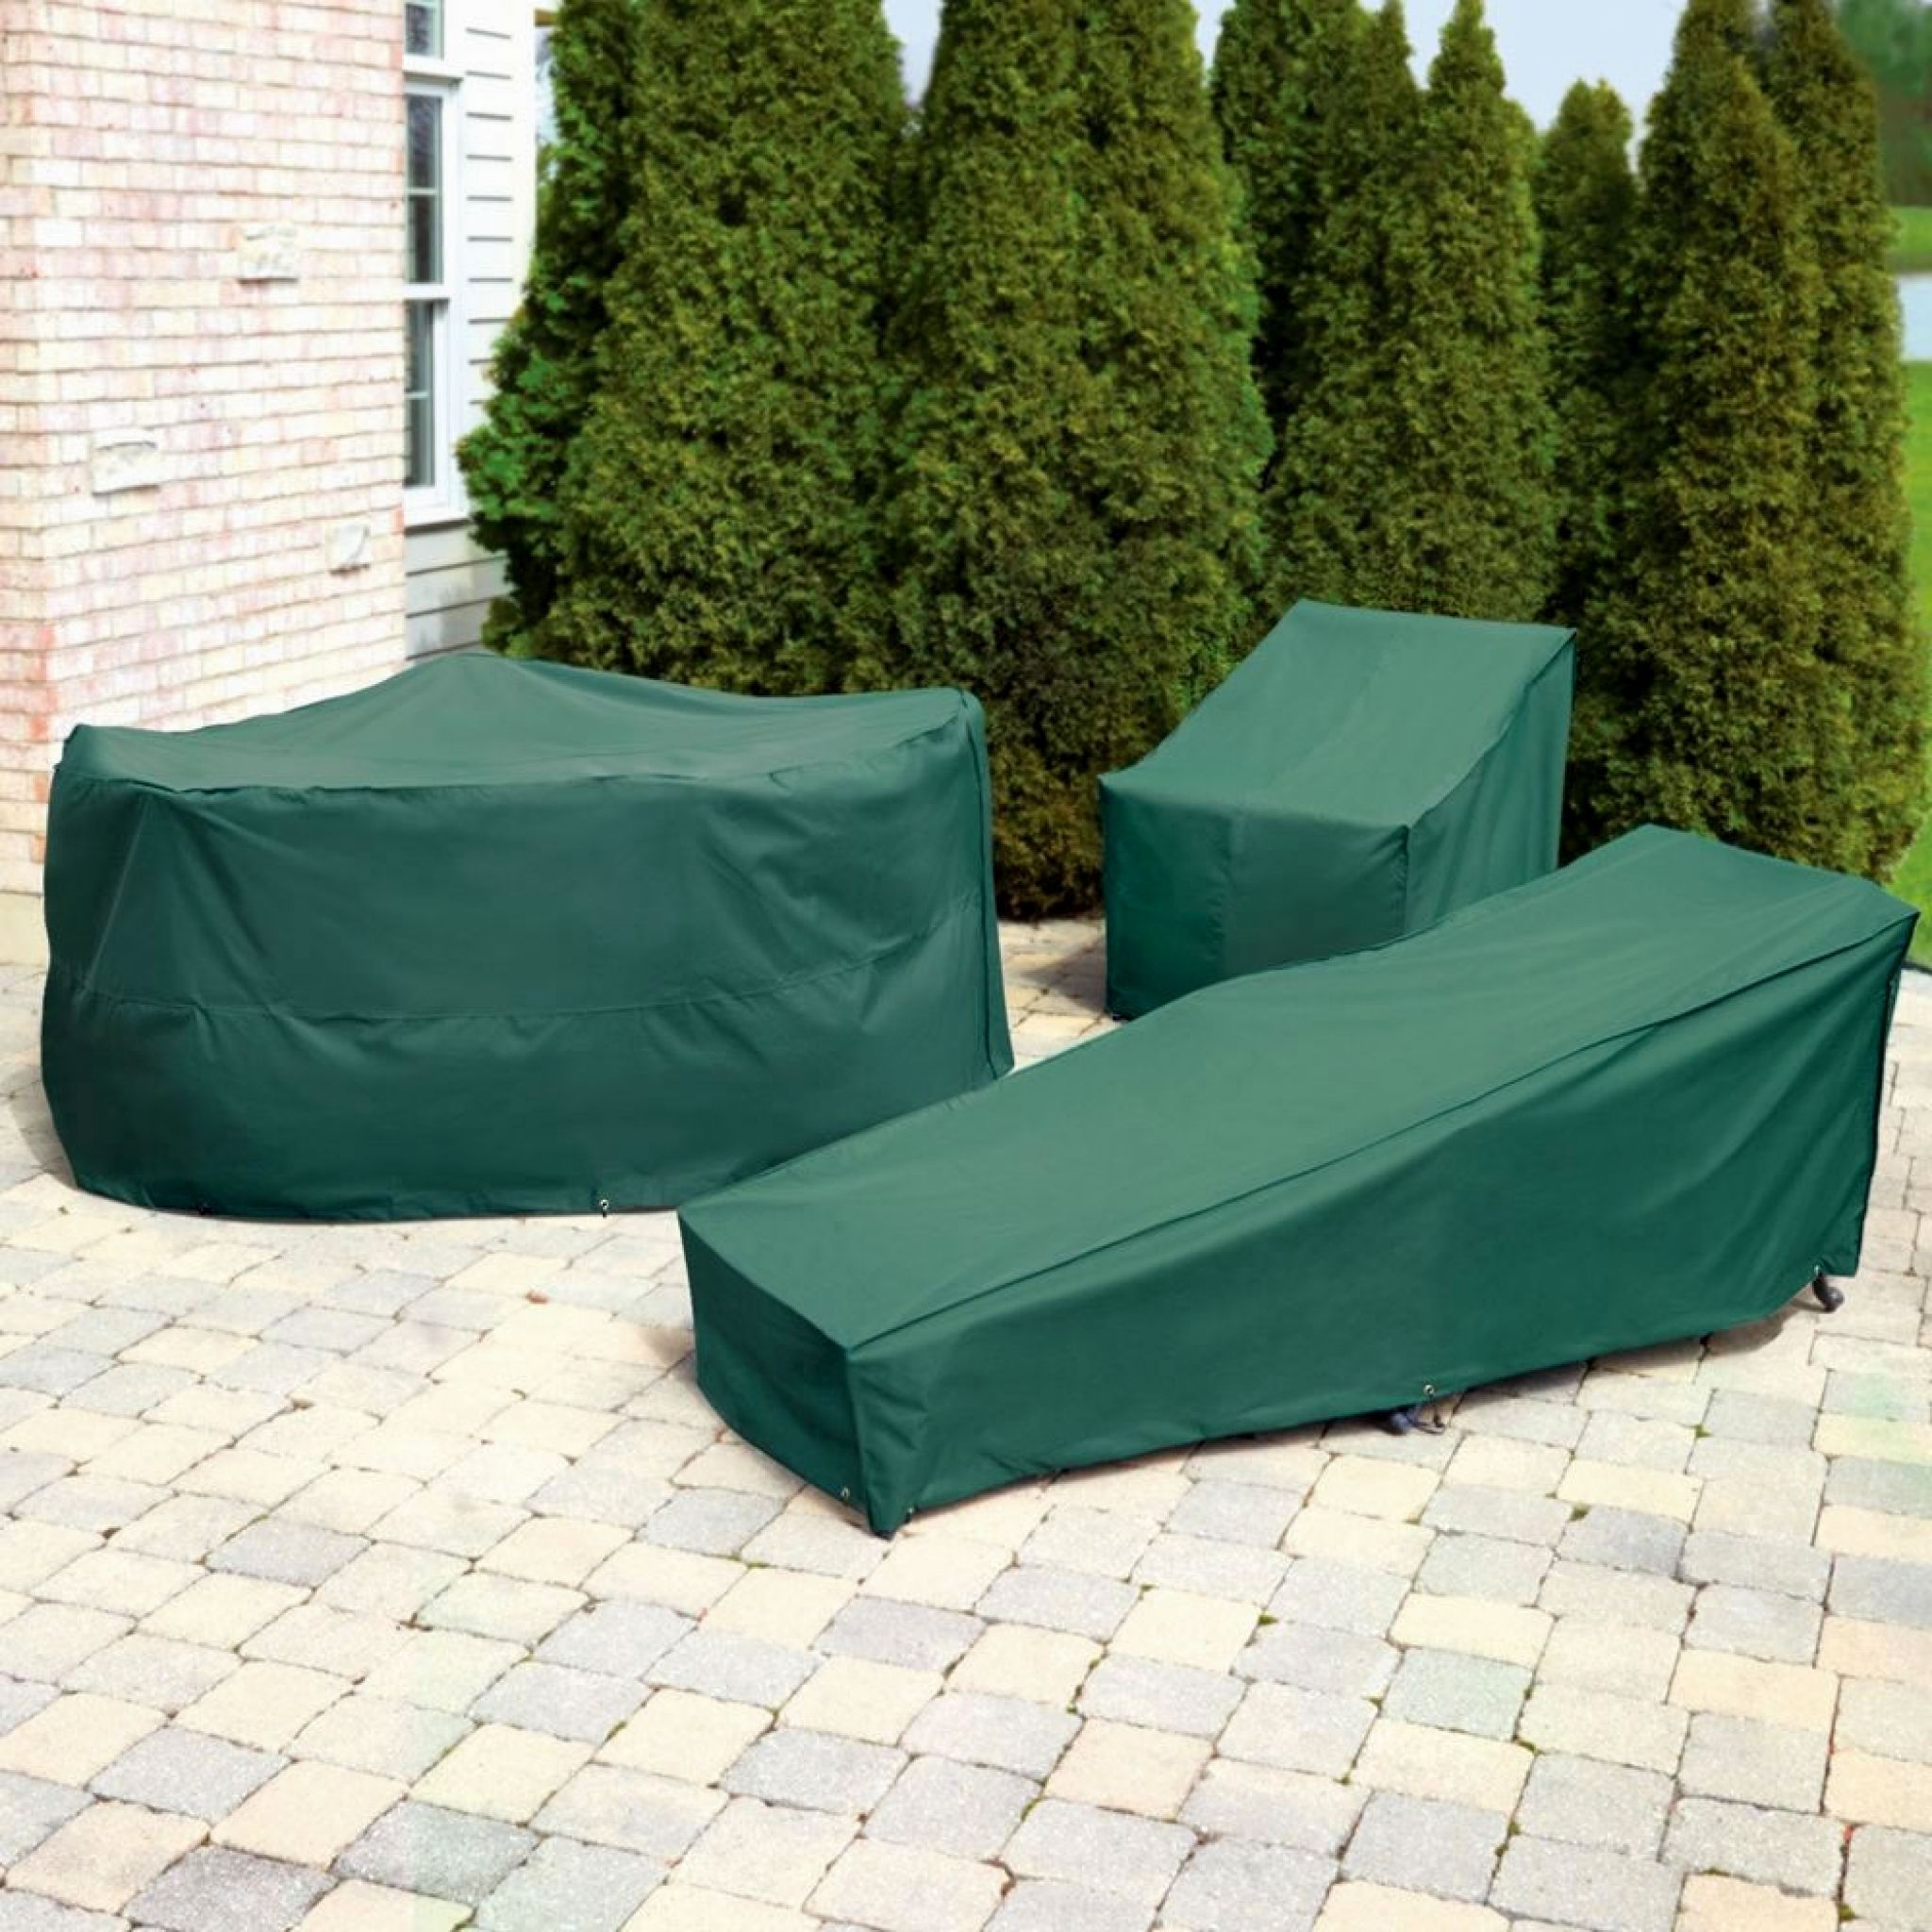 Outdoor Furniture Covers Reviews   Interior Paint Colors For 2017 Check  More At Http:/